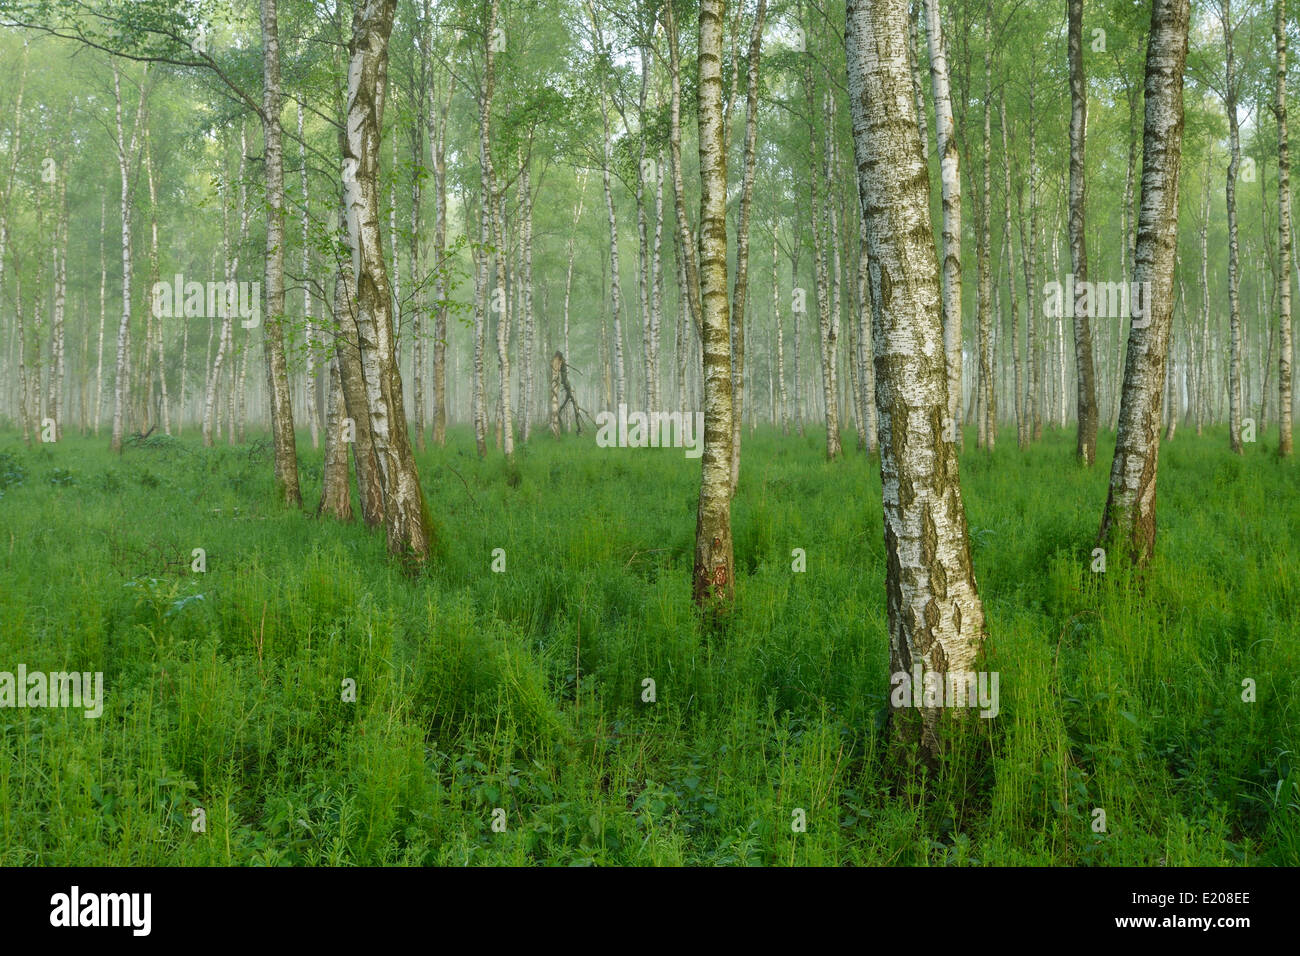 Forest of Downy Birch or White Birch (Betula pubescens) in a light mist, Biebrza National Park, Poland - Stock Image